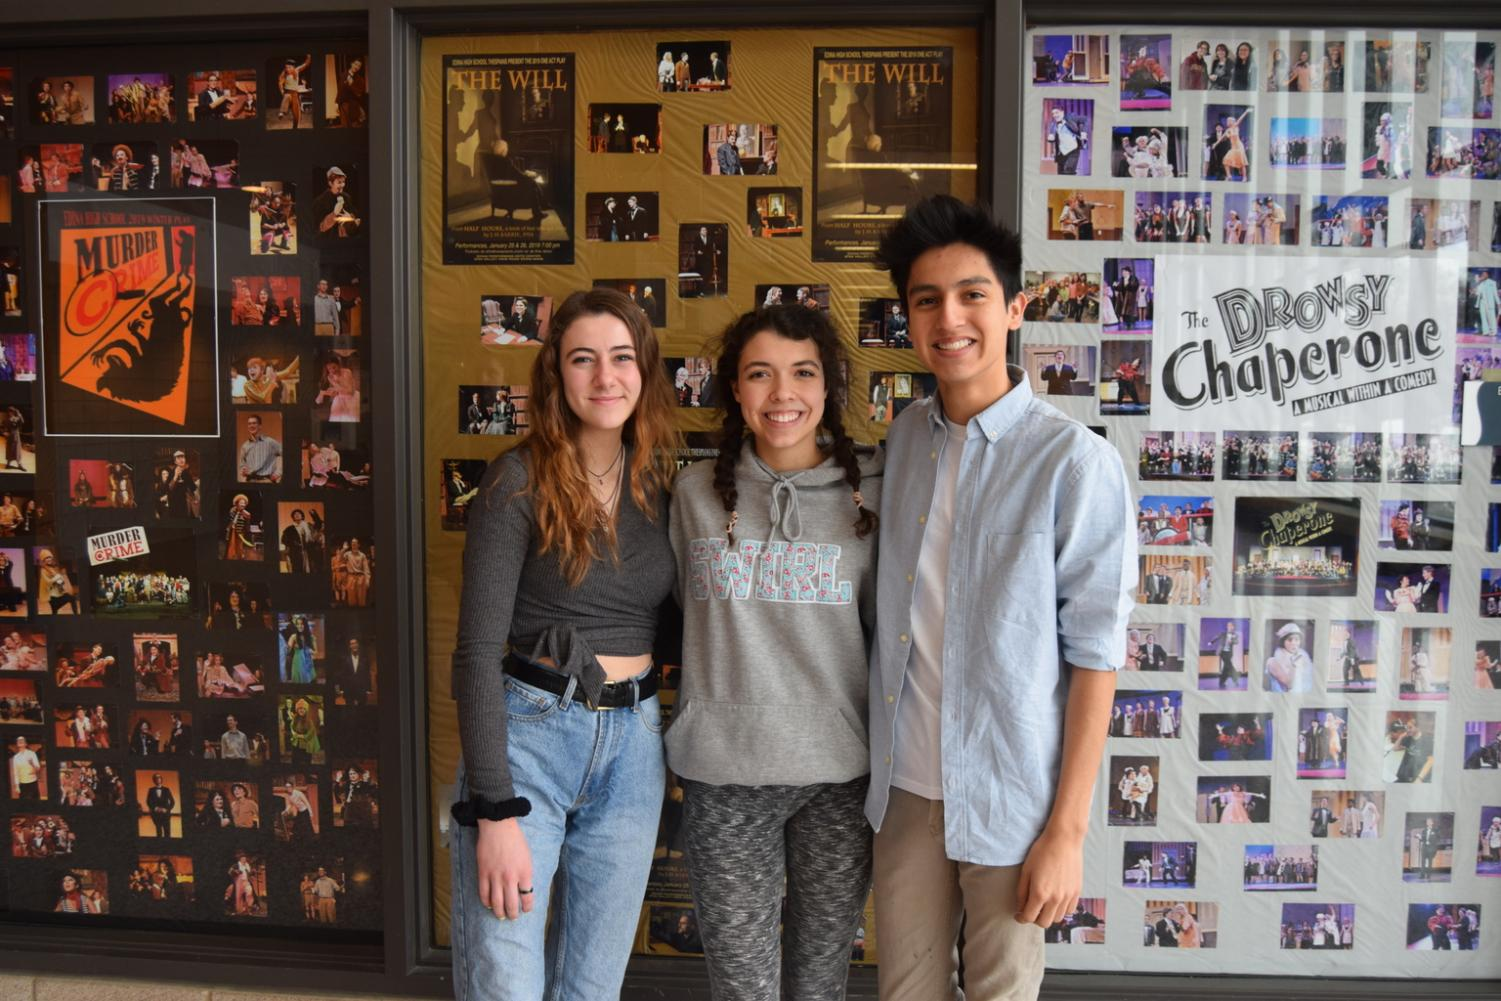 Future stars: EHS students pursue a career in the theatre industry.